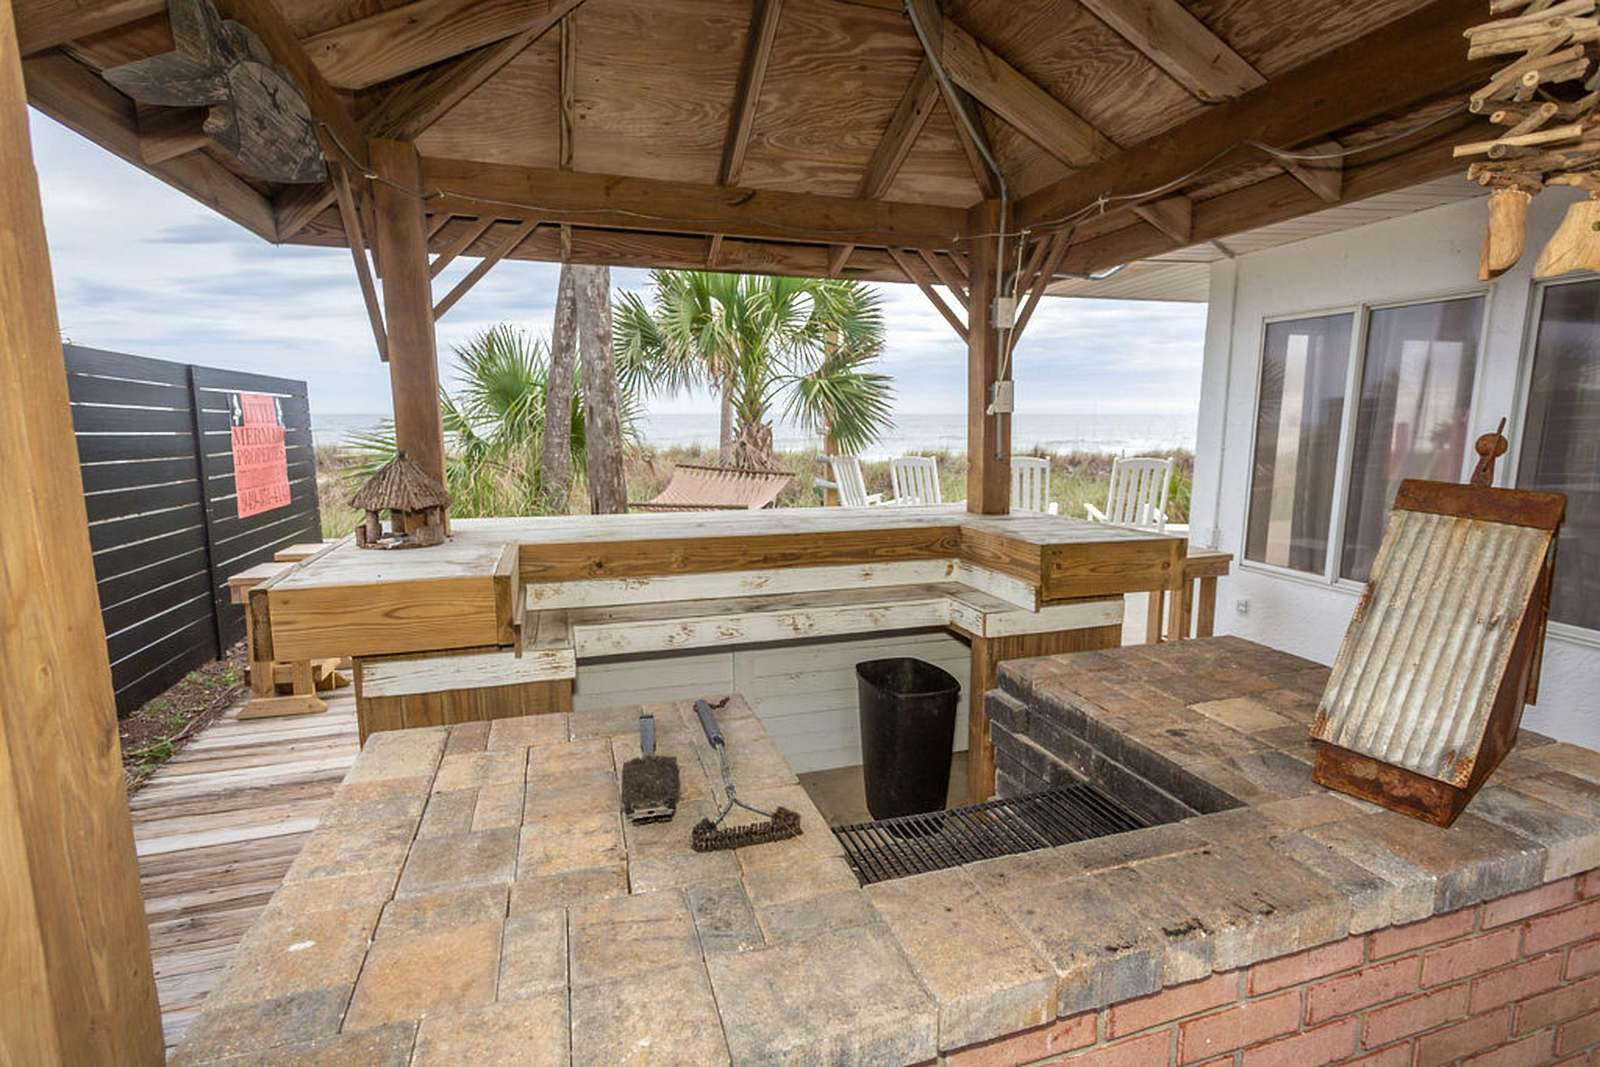 Custom barbecue with built in grill and large serving table, barstools, bar, overlooking gulf